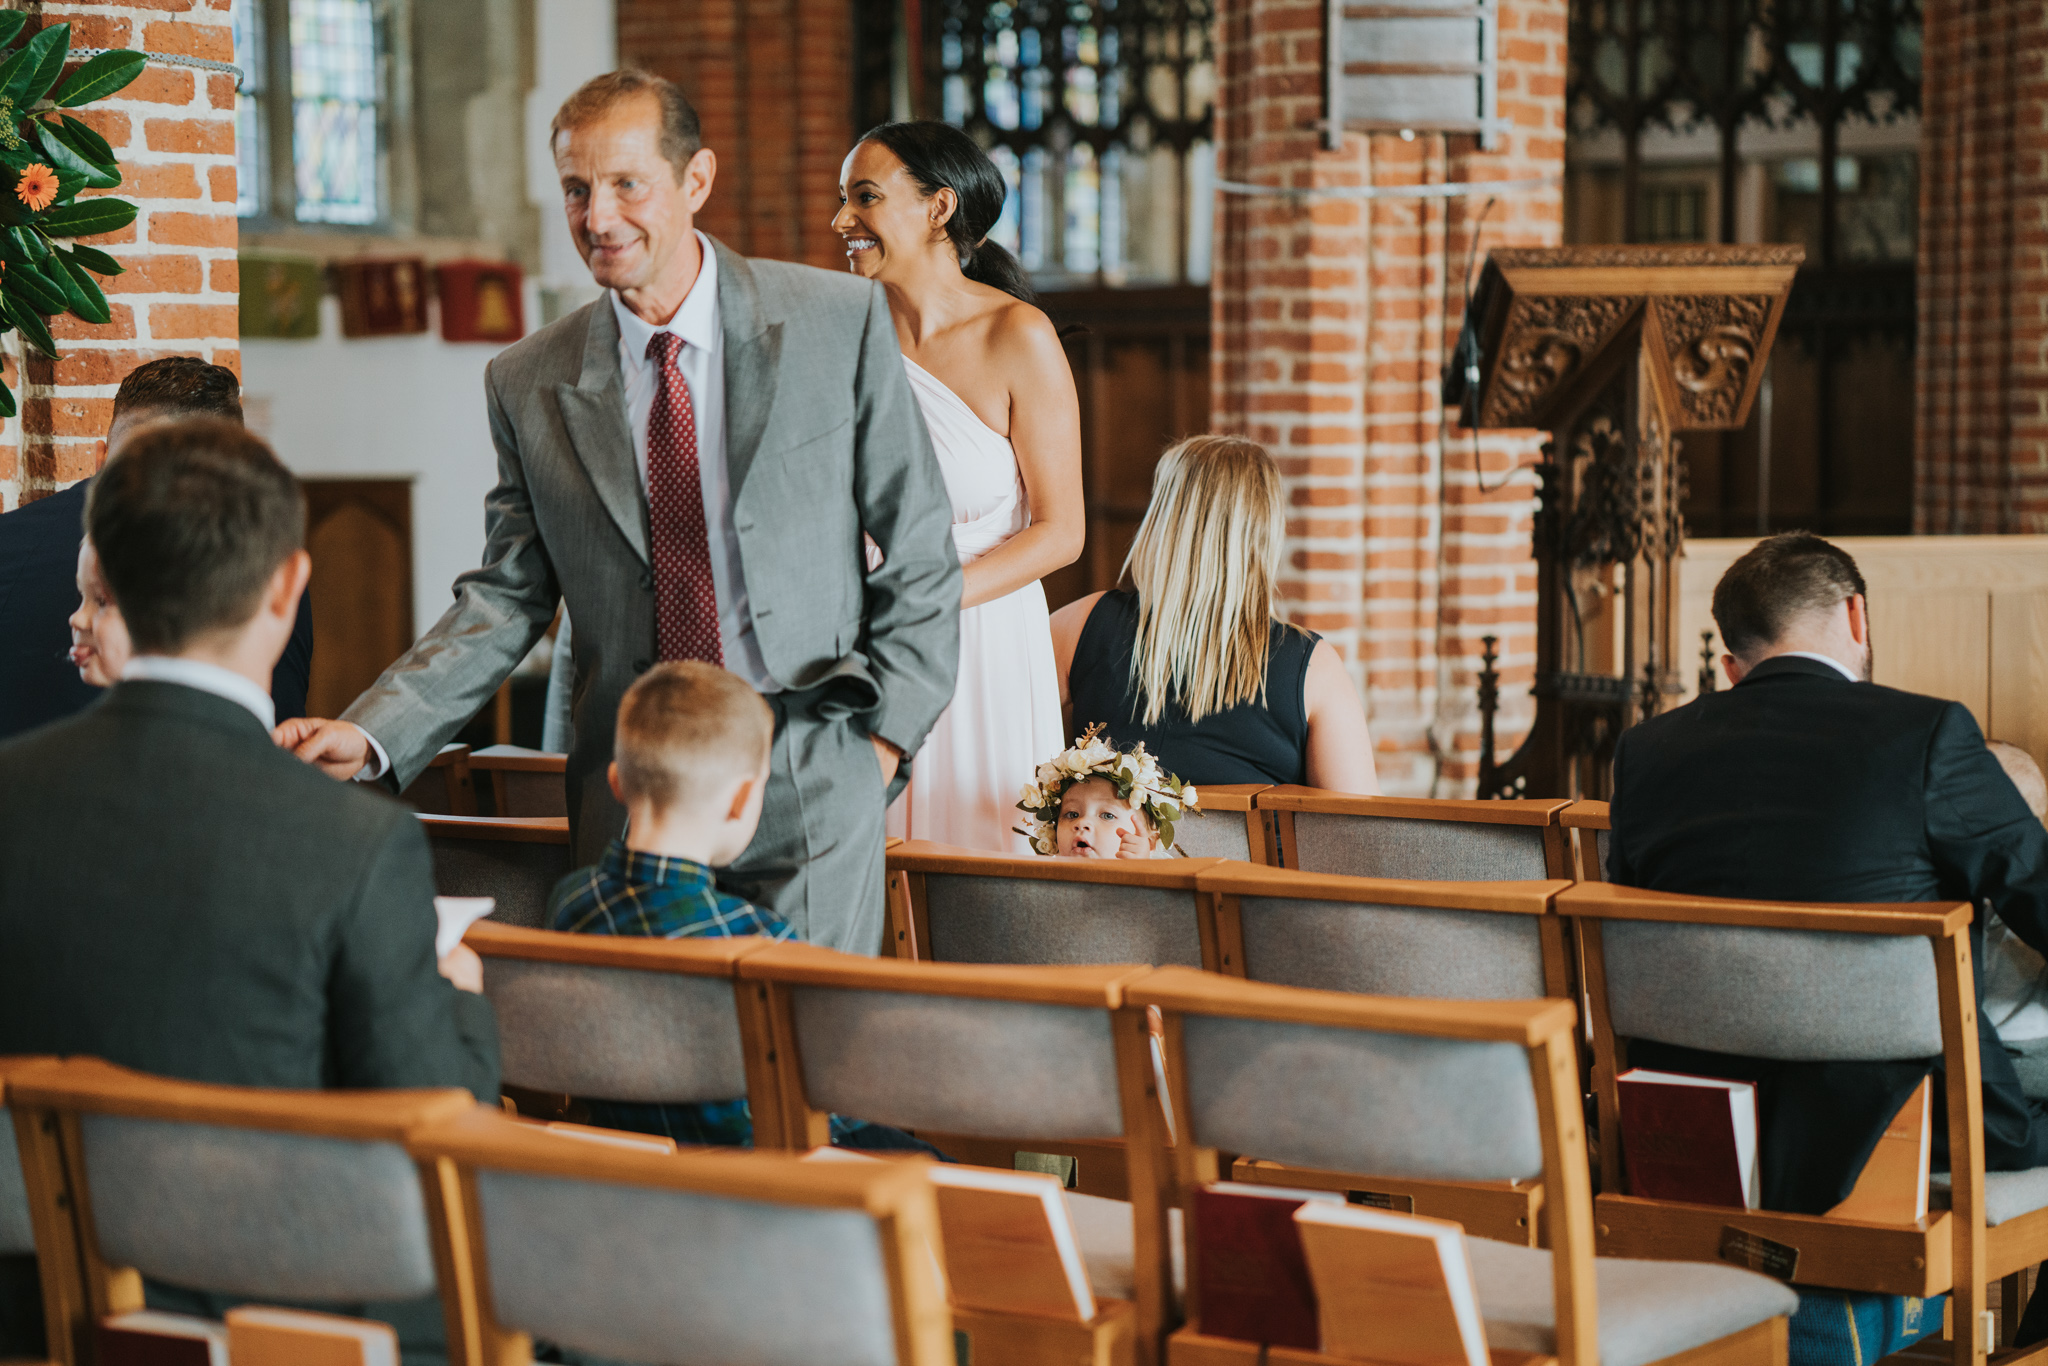 intimate-english-church-wedding-sarah-alex-colchester-essex-grace-elizabeth-colchester-essex-alternative-wedding-lifestyle-photographer-essex-suffolk-norfolk-devon (26 of 92).jpg